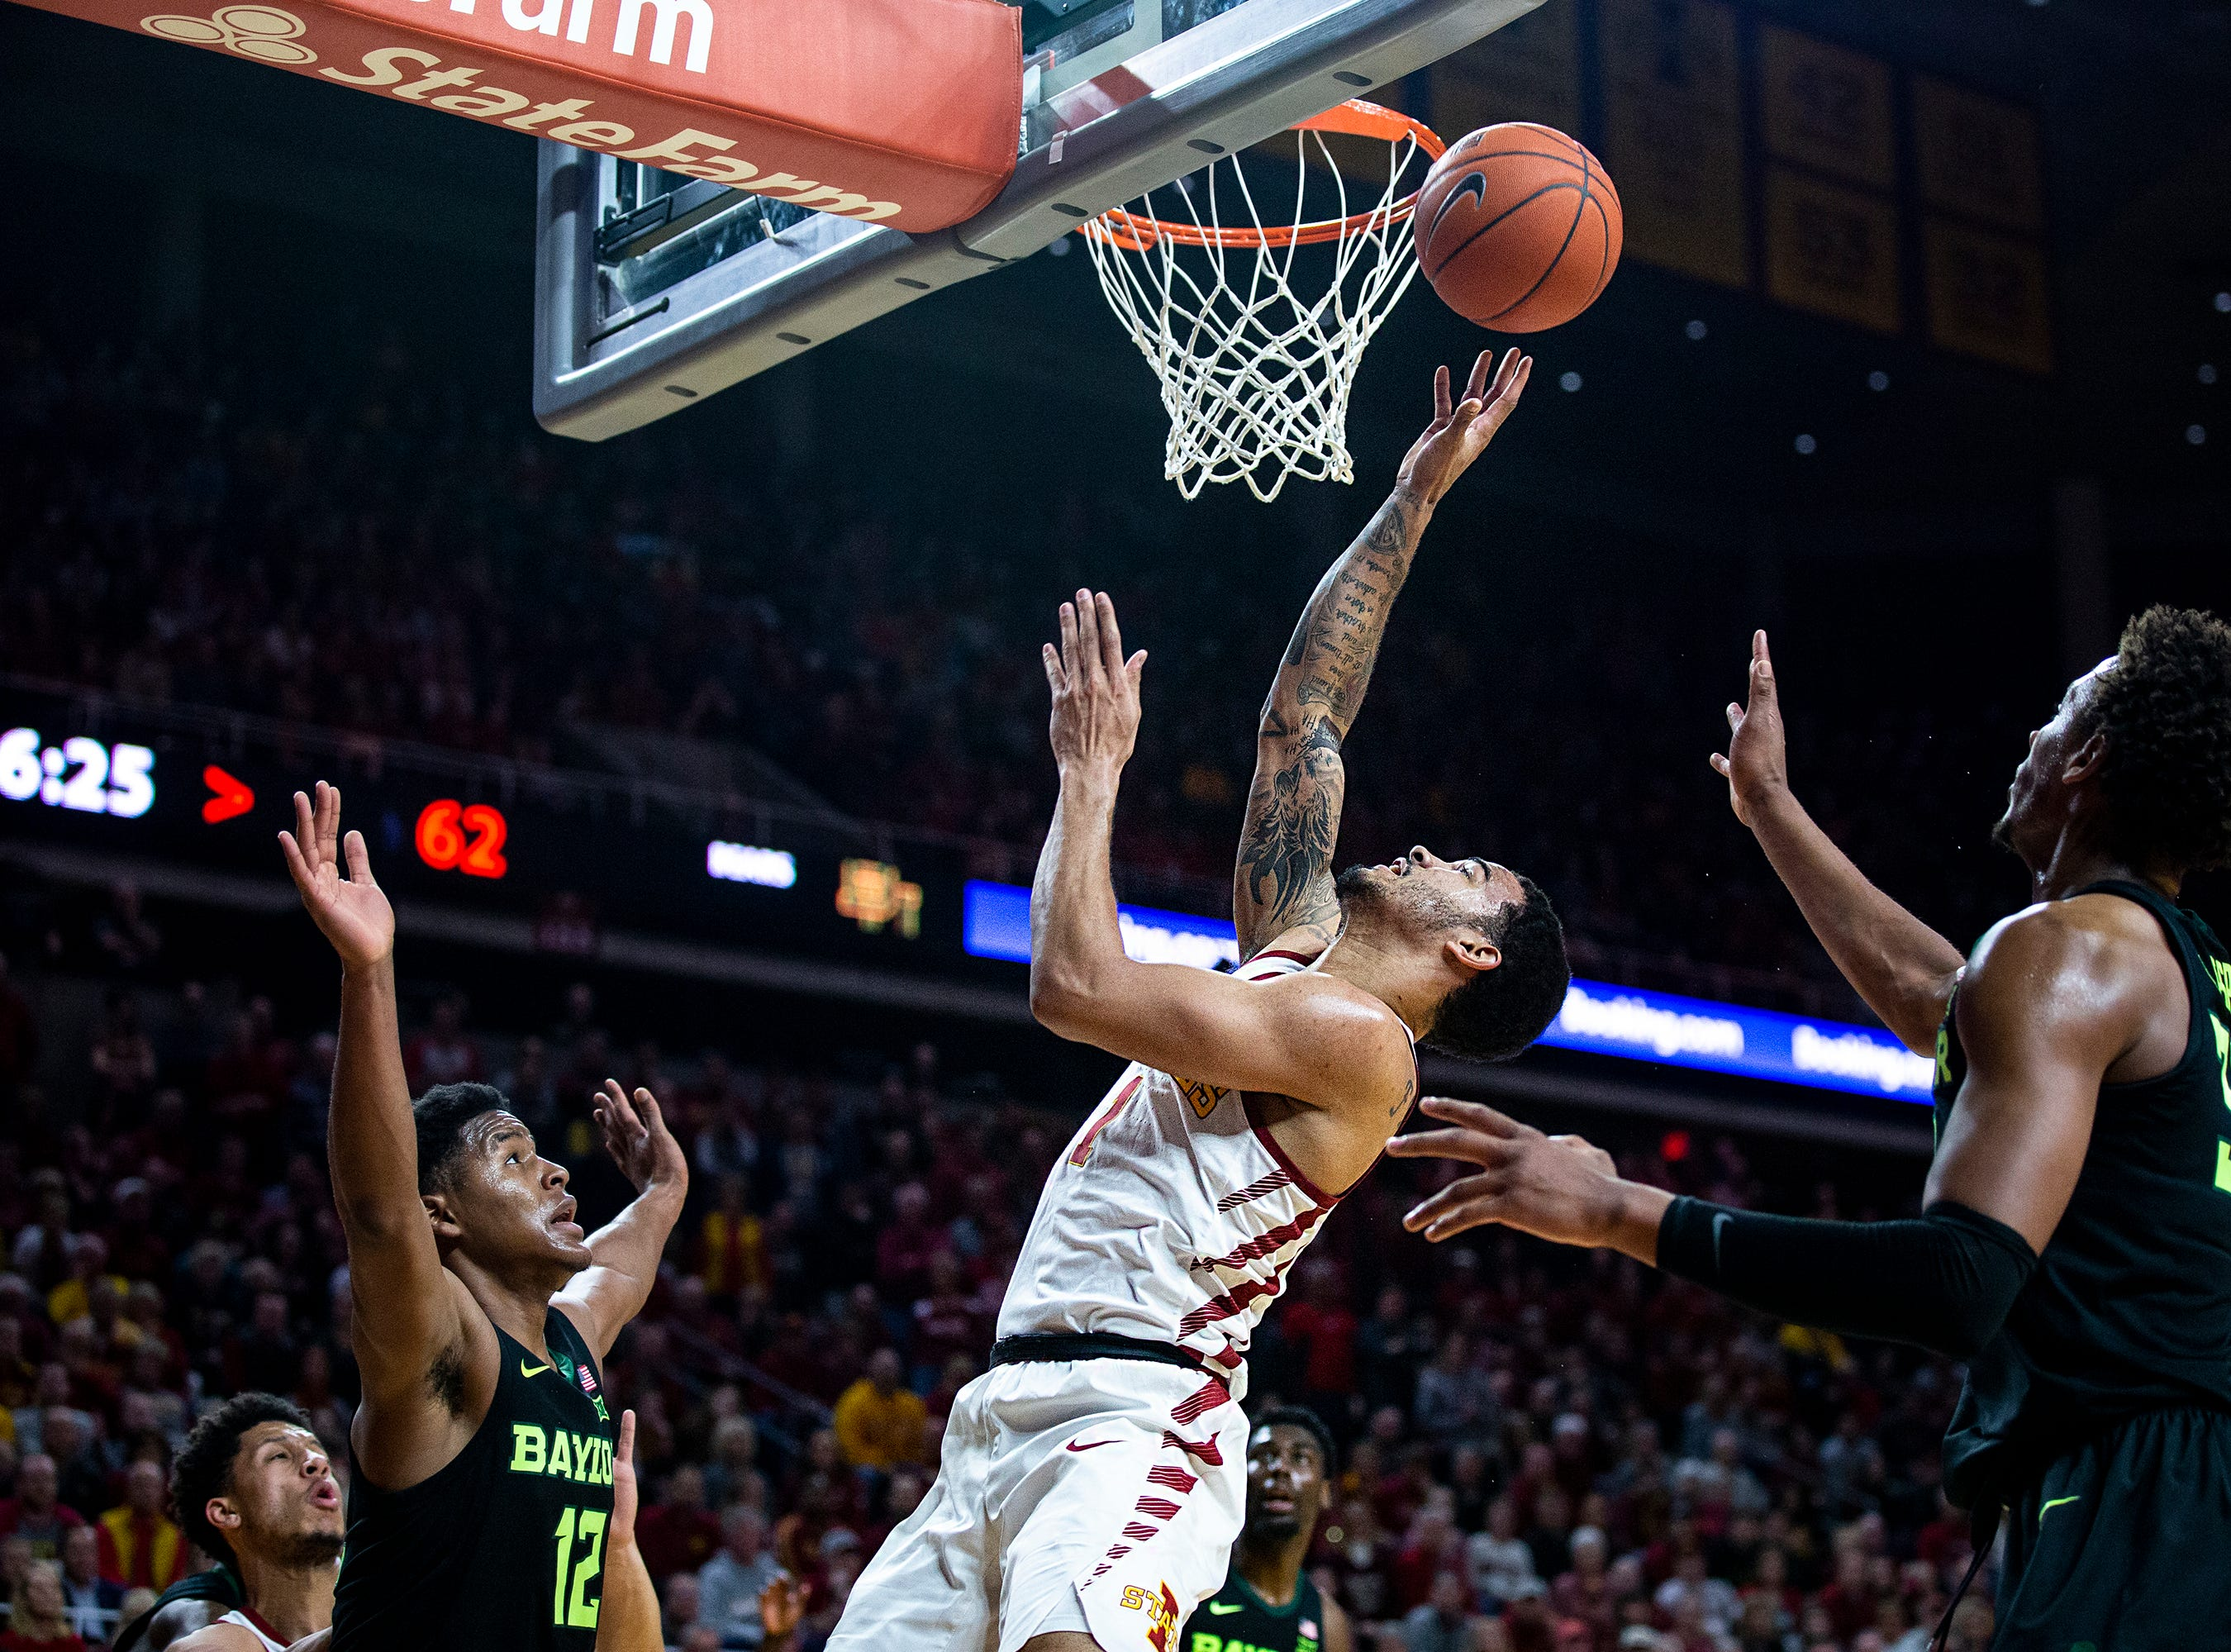 Iowa State's Nick Weiler-Babb shoots a lay-up during the Iowa State men's basketball game against Baylor on Tuesday, Feb. 19, 2019, in Hilton Coliseum. The Cyclones fell to the Bears 69-73.